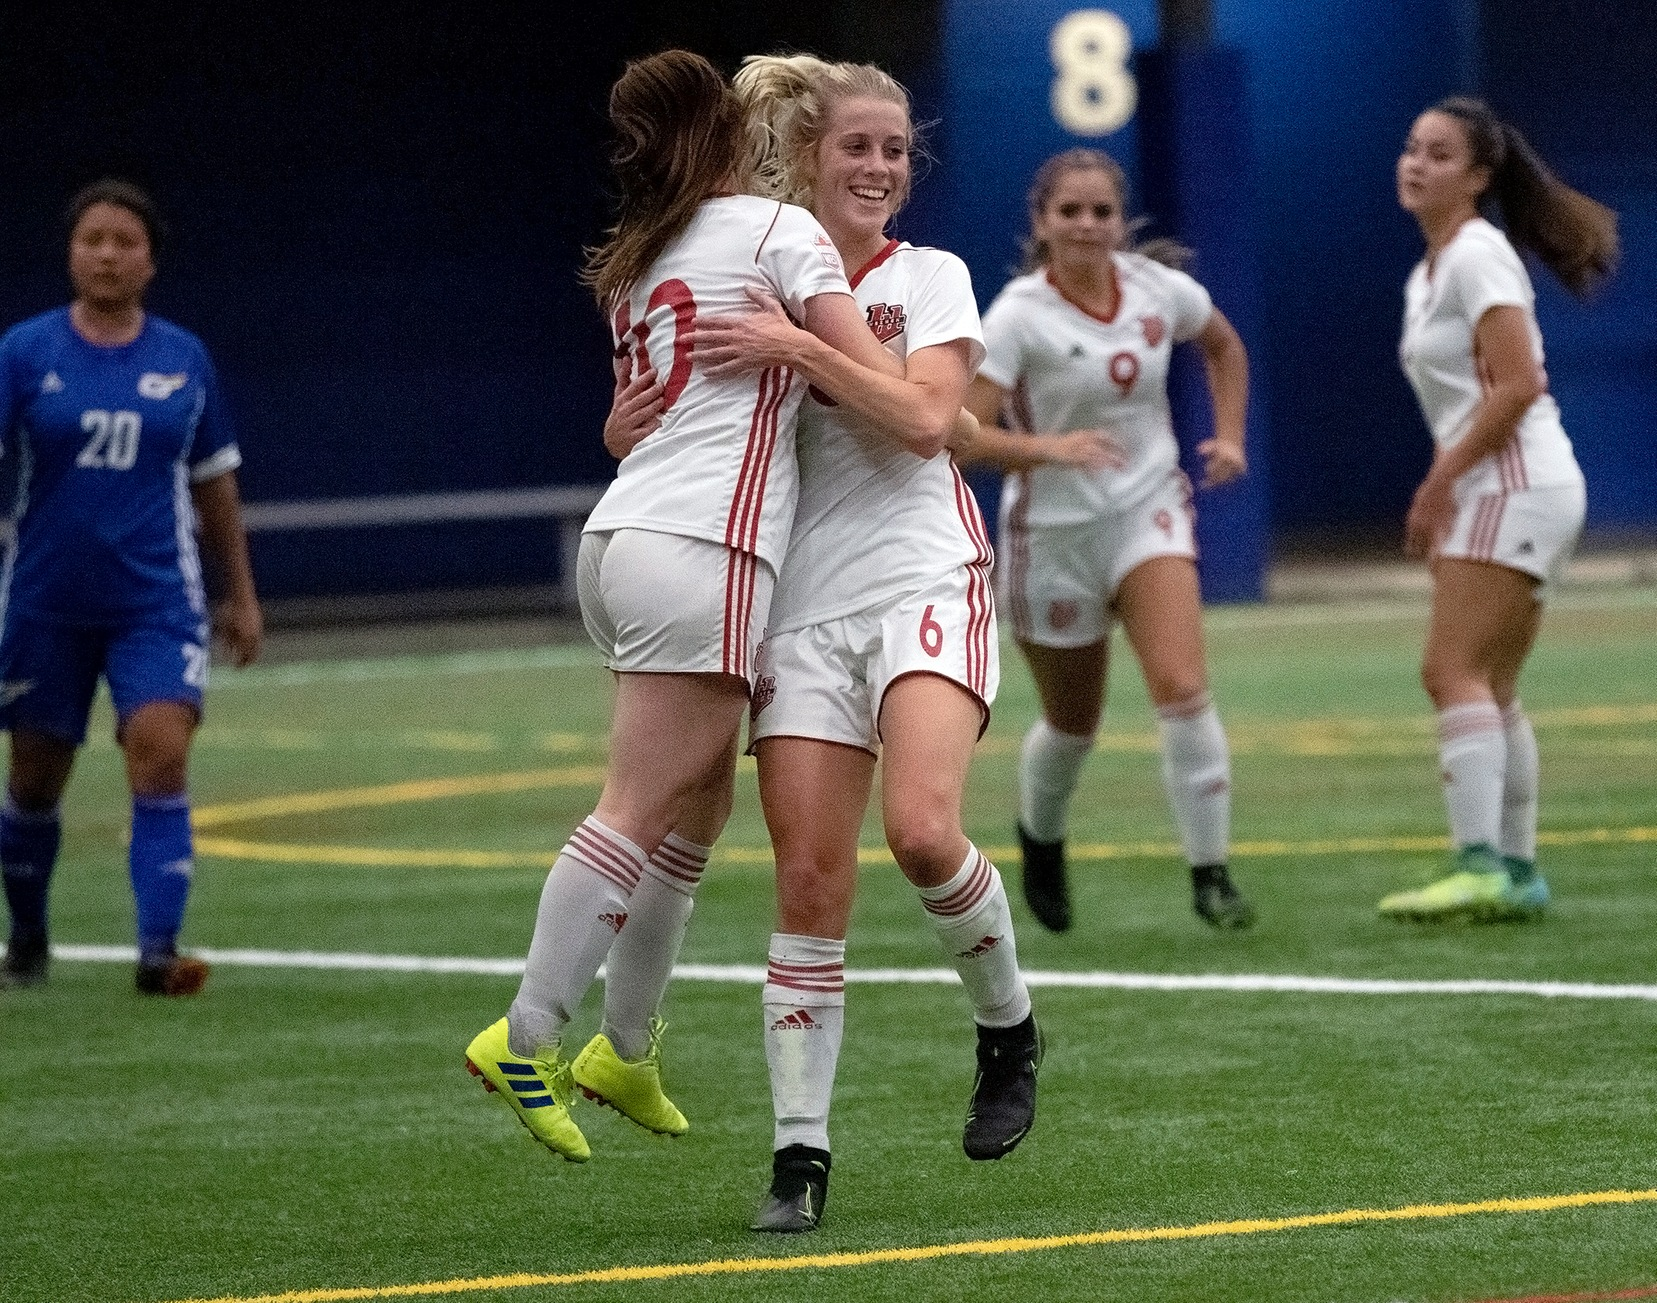 Alycia Mann (left) and Nicole Seavers celebrate Mann's penalty kick goal during Wesmen women's soccer action, Sept. 20, 2019 at the WSF North indoor soccer pitch. (David Larkins/Wesmen Athletics)